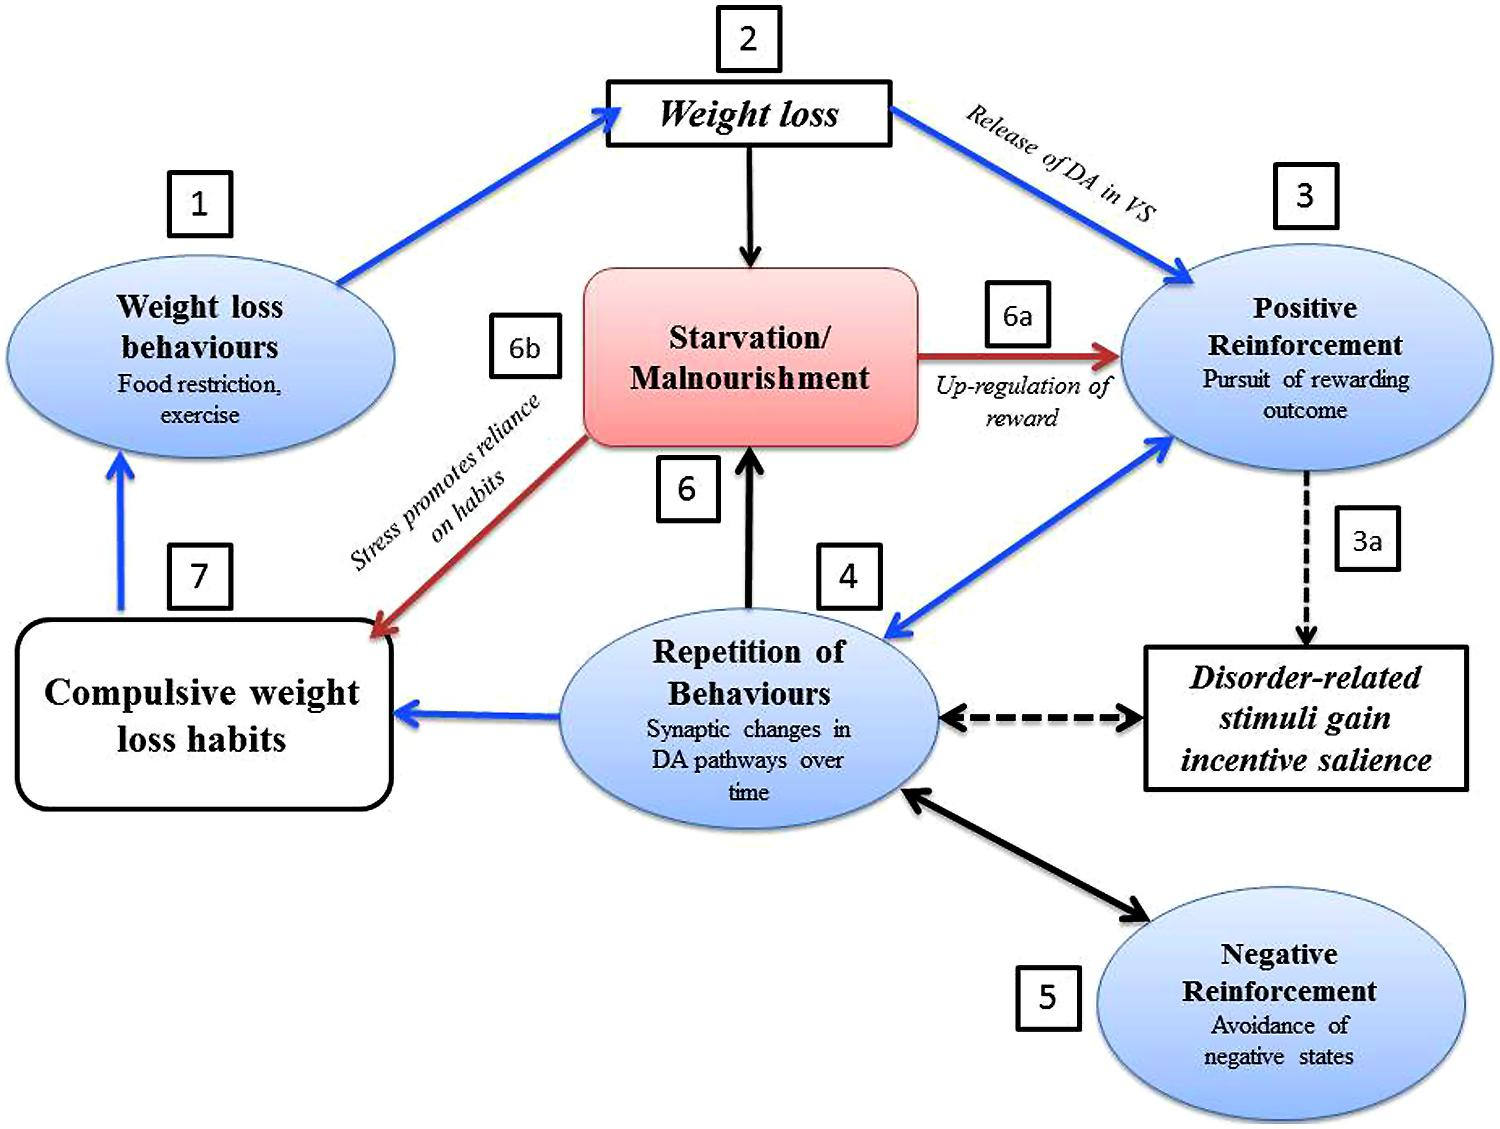 an analysis of the causes and treatment diseas anorexia nervosa V structured abstract objectives the rti international—university of north carolina at chapel hill evidence-based practice center (rti-unc epc) systematically reviewed evidence on efficacy of treatment for anorexia nervosa (an), bulimia nervosa (bn), and.